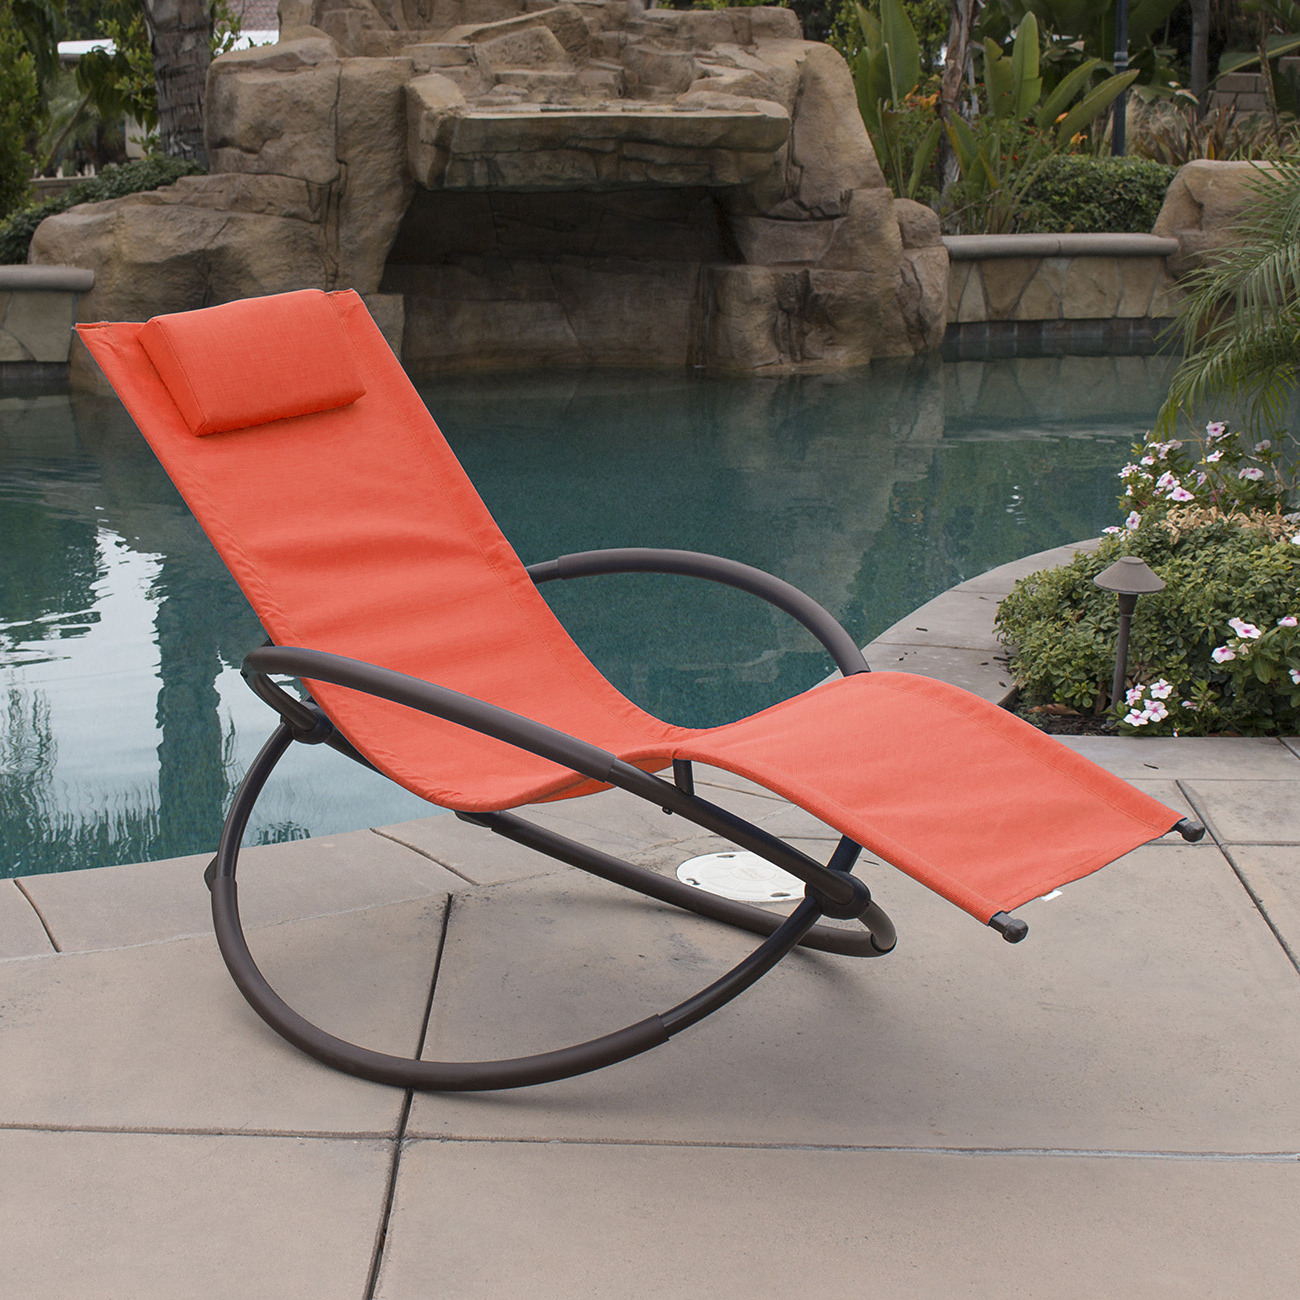 Brown Folding Patio Chaise Lounger Chairs Throughout Fashionable Ghp Brown Steel Frame Orange Orbital Zero Gravity Chaise Lounger Recliner  Chair (View 7 of 25)